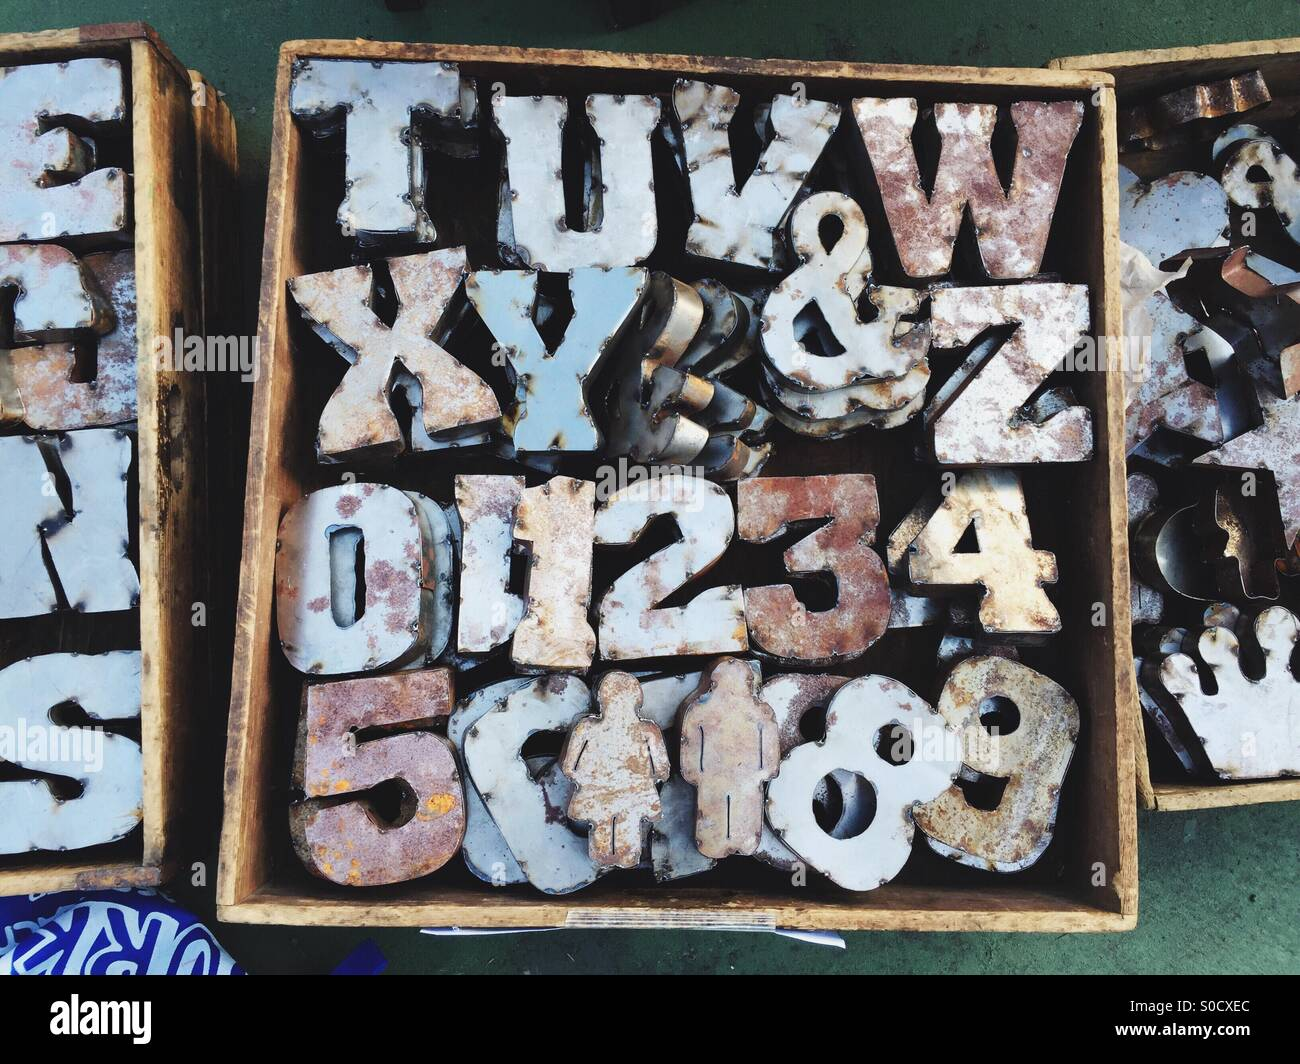 Metal letters, numbers and figures are for sale at a flea market. - Stock Image